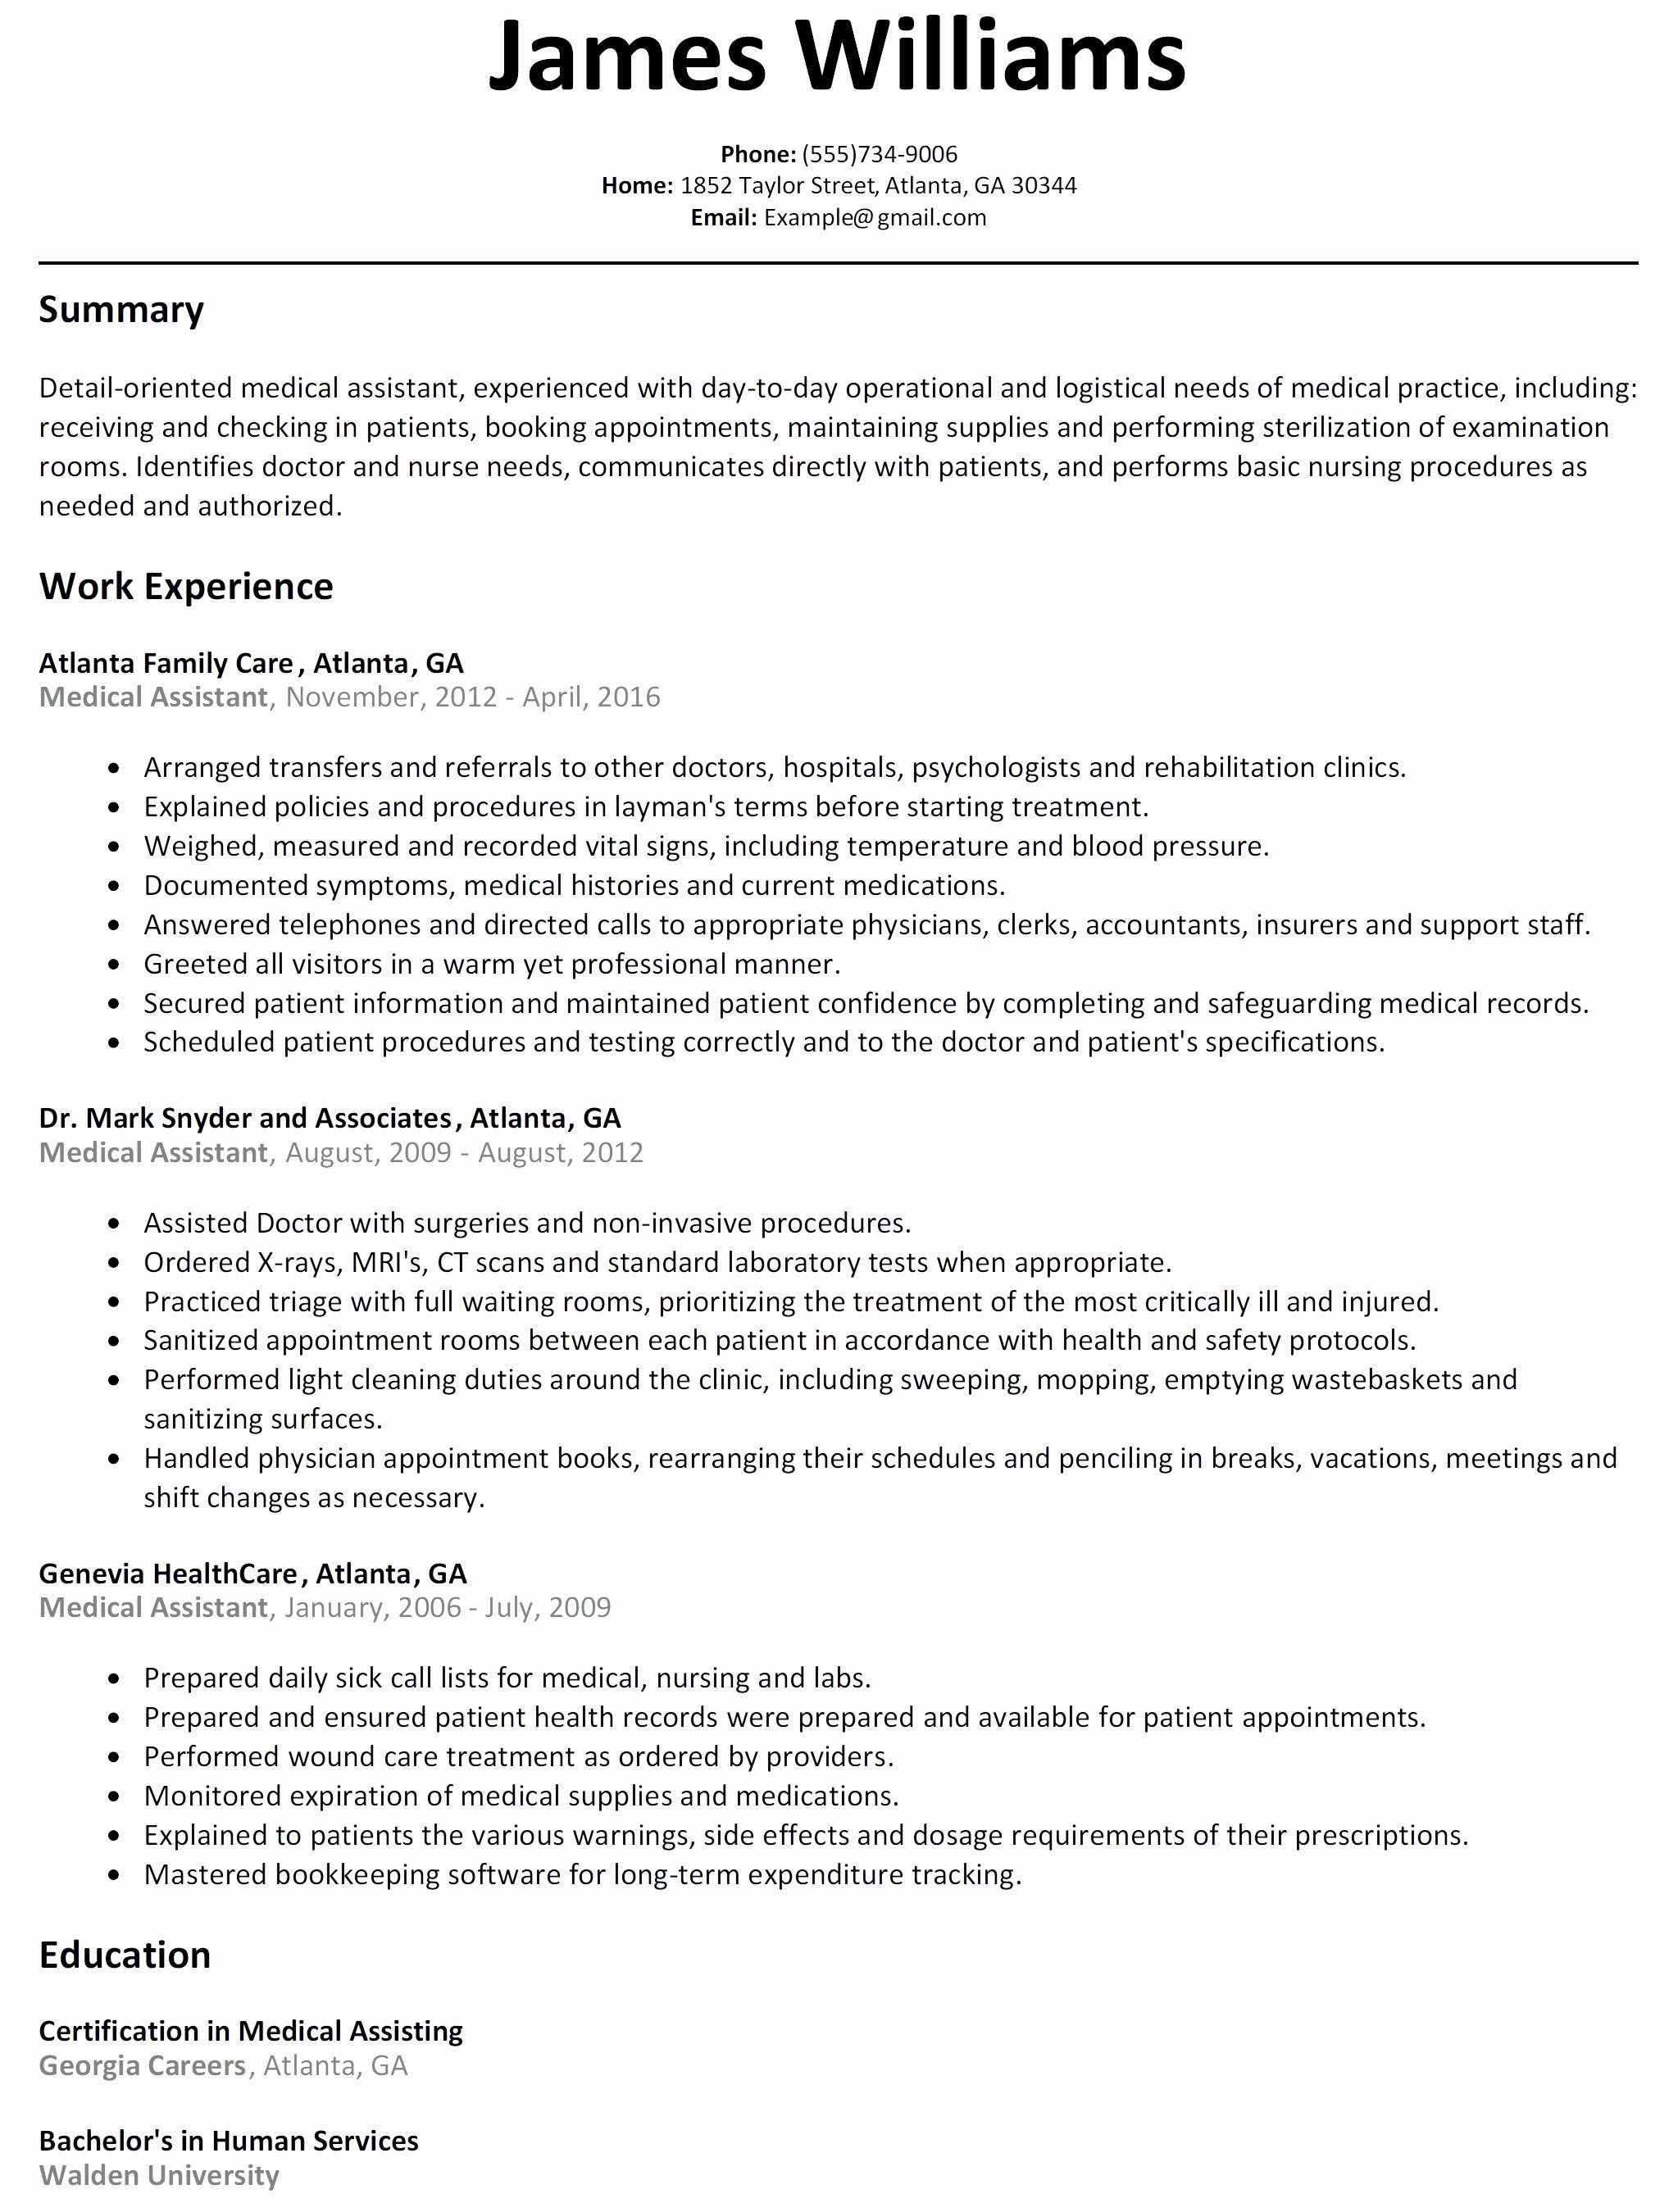 9 fedex resume ideas